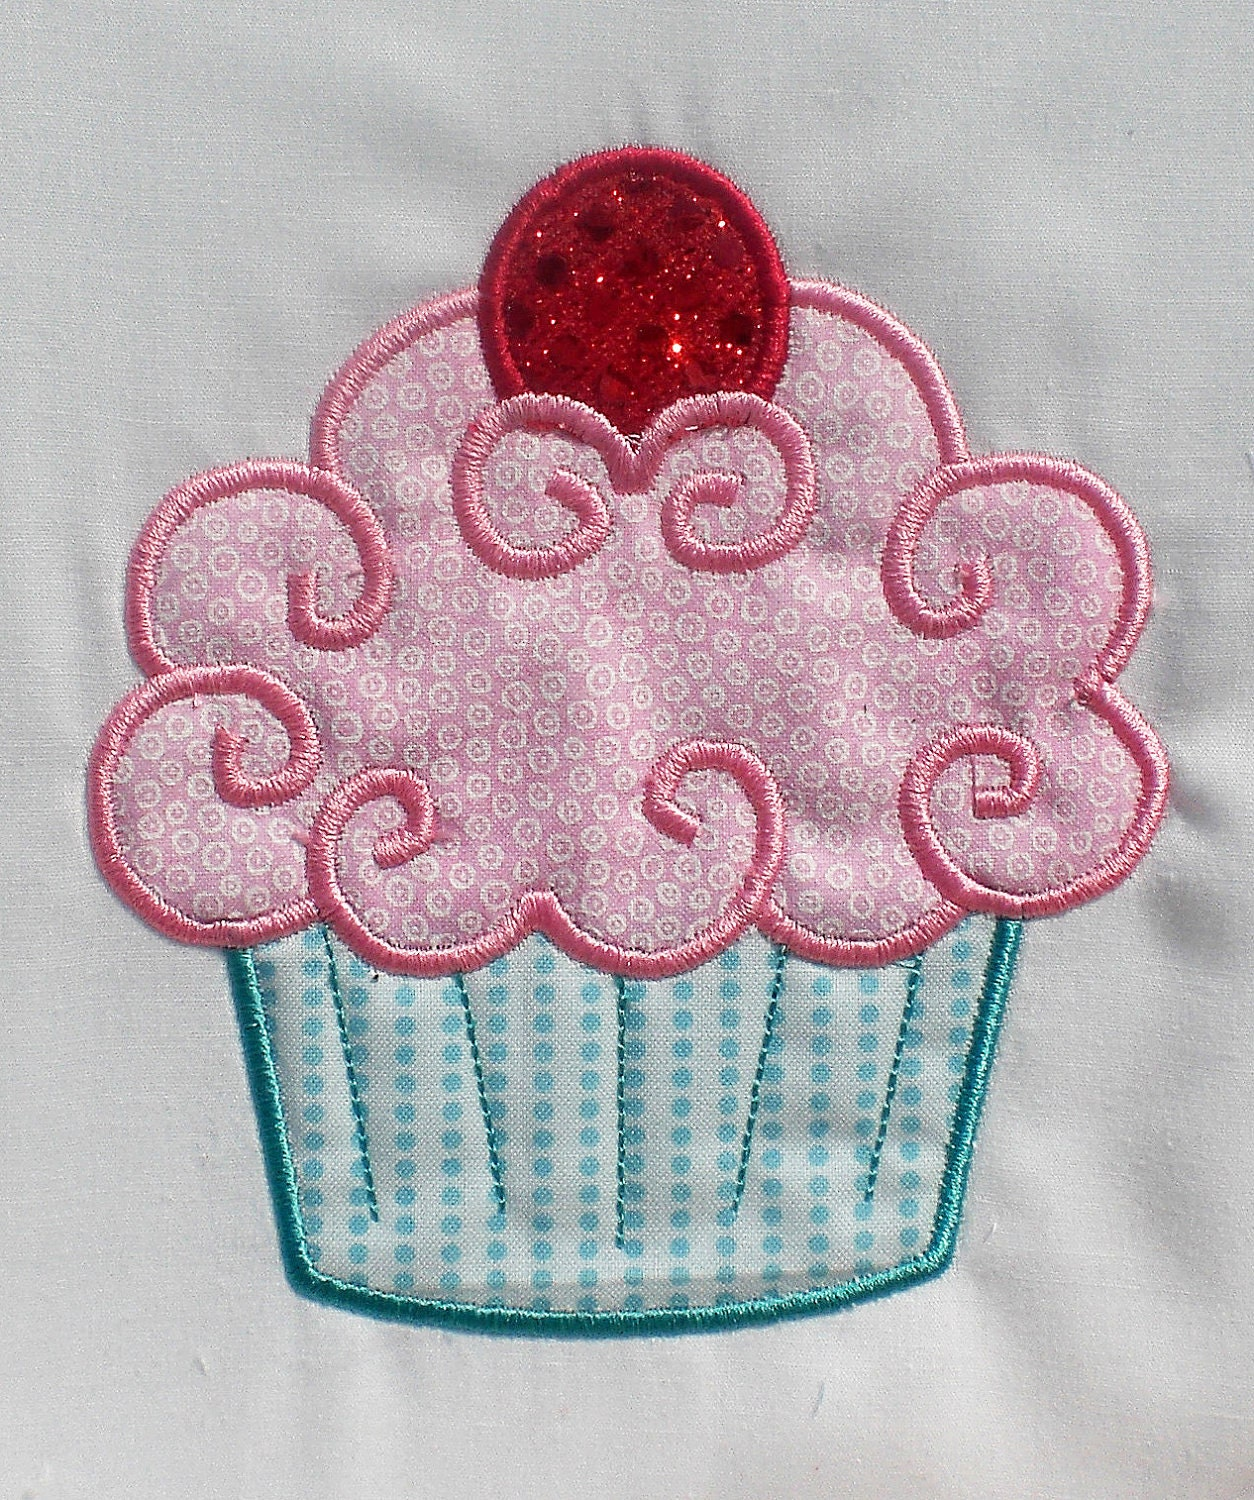 fancy cupcake embroidery design machine applique. Black Bedroom Furniture Sets. Home Design Ideas